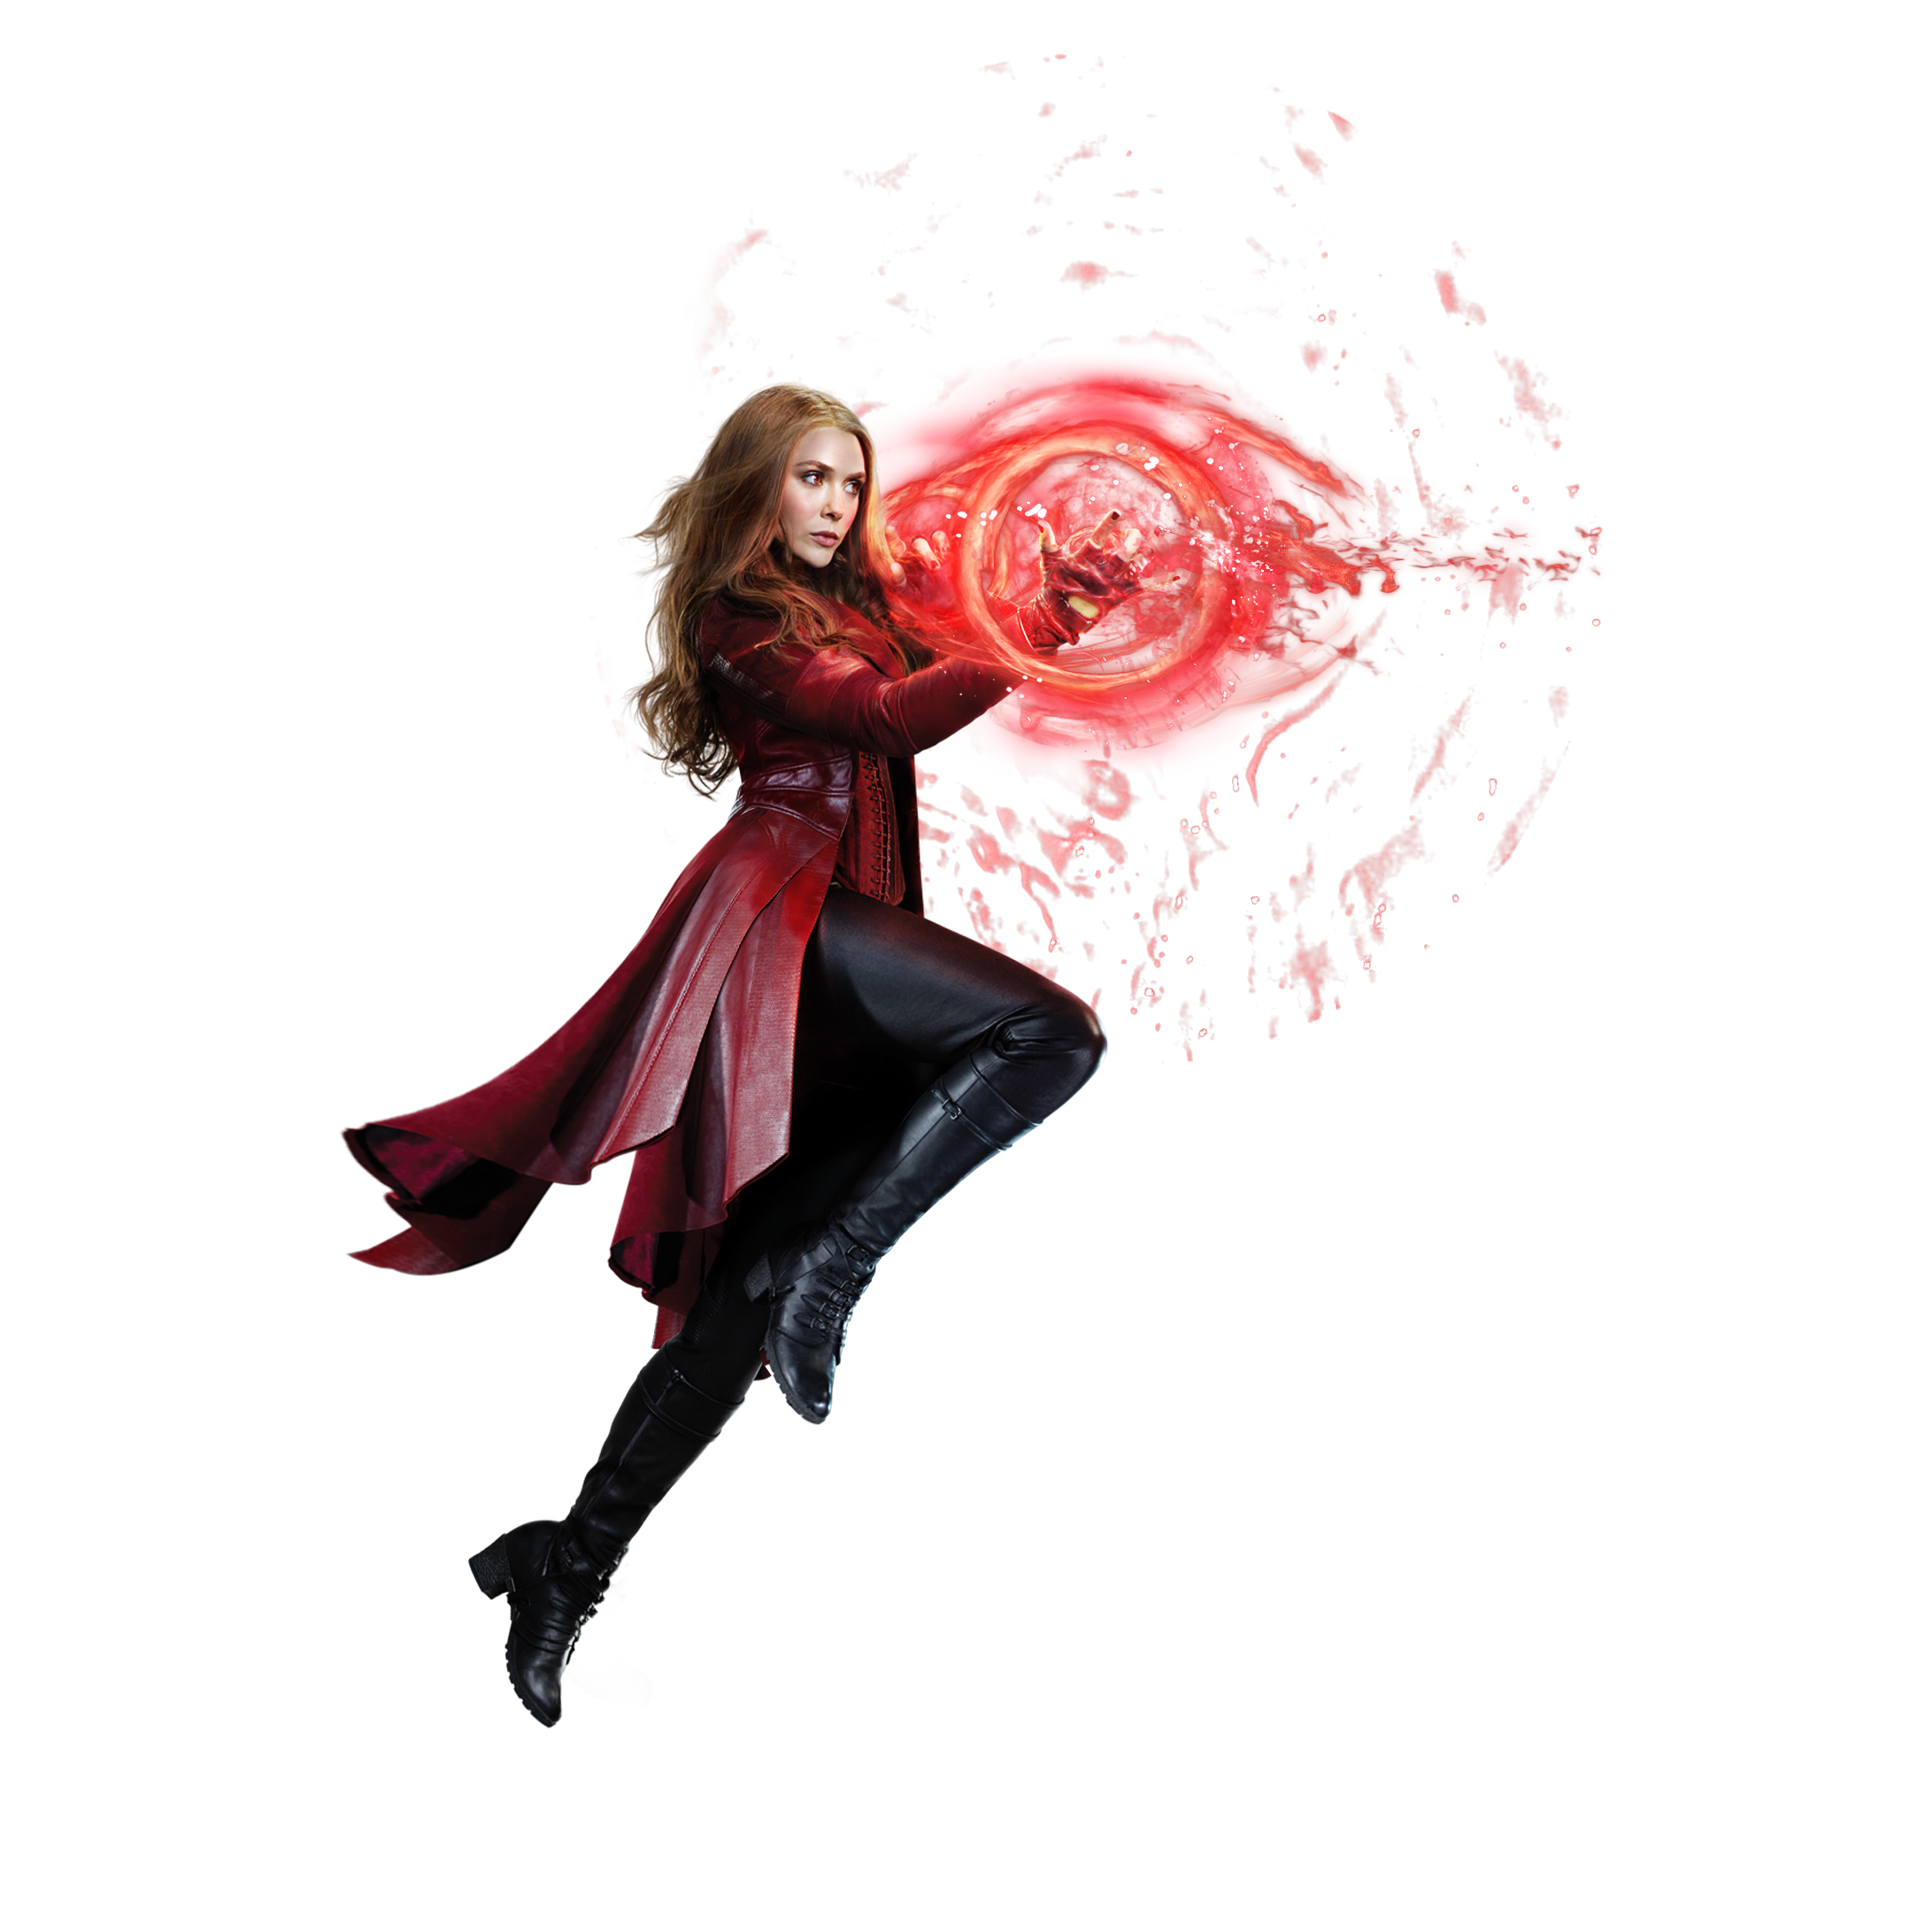 . PlusPng.com Scarlet Witch | C.A.C.W. No Background by josemikhail - Scarletwitch HD PNG